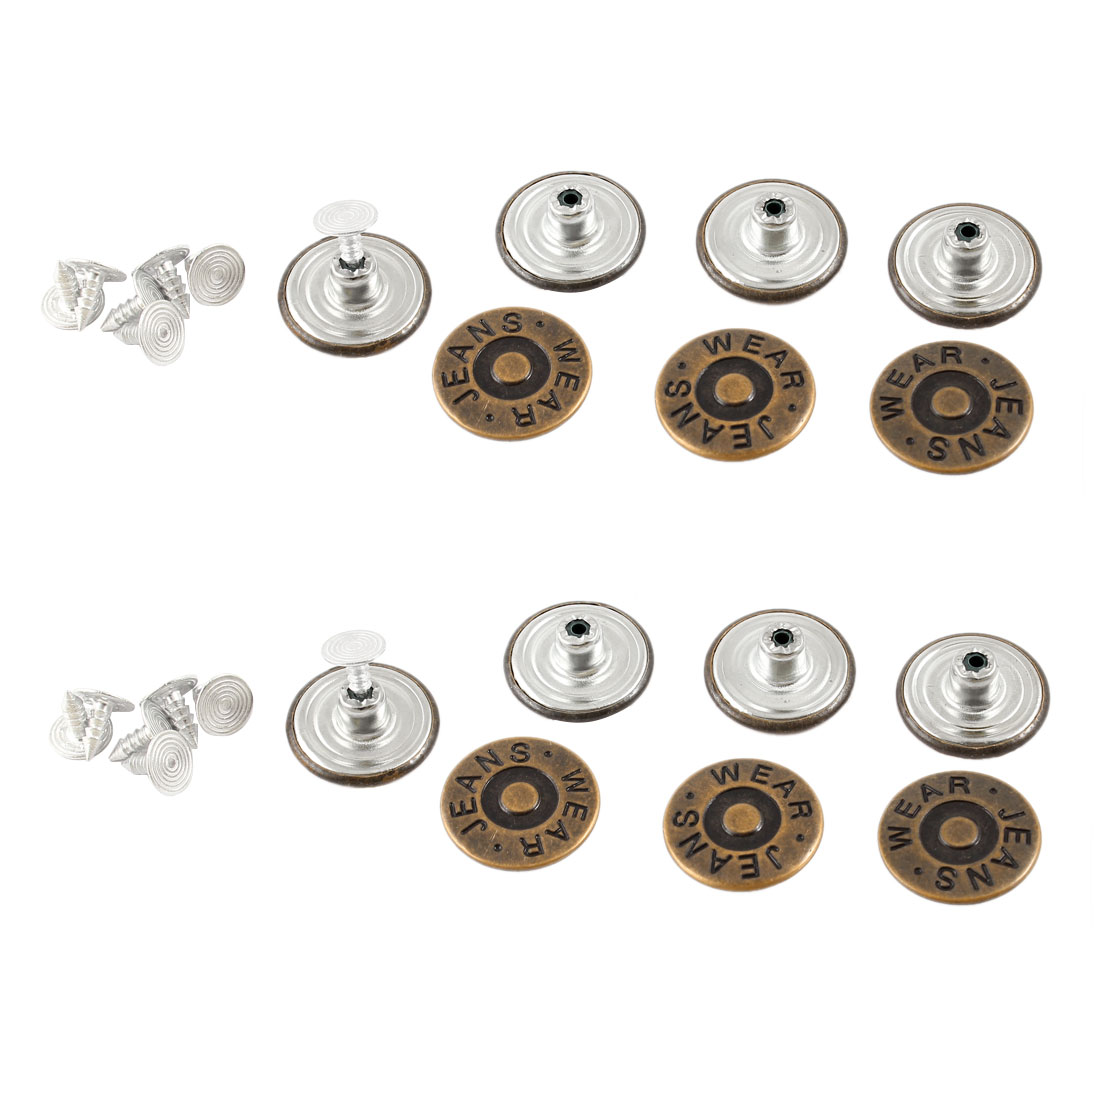 Letters Carved Trousers Sew Tack Buttons Copper Tone 14PCS for Tailors